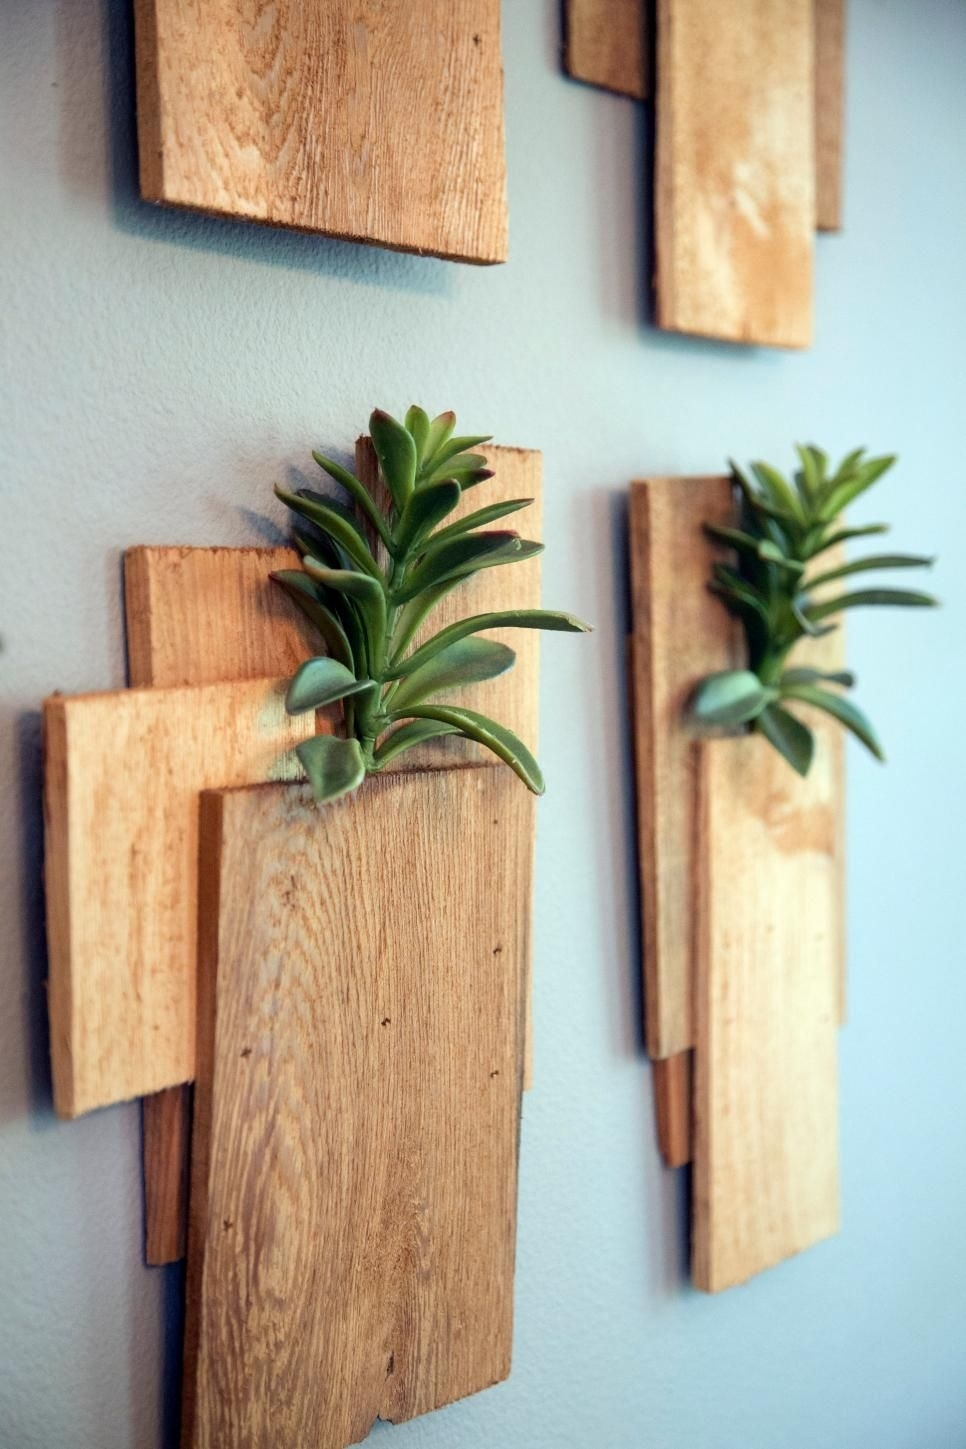 Wall Art Ideas From Chip And Joanna Gaines | Coastal Decorating Pertaining To Most Popular Unique Wall Art (Gallery 2 of 15)